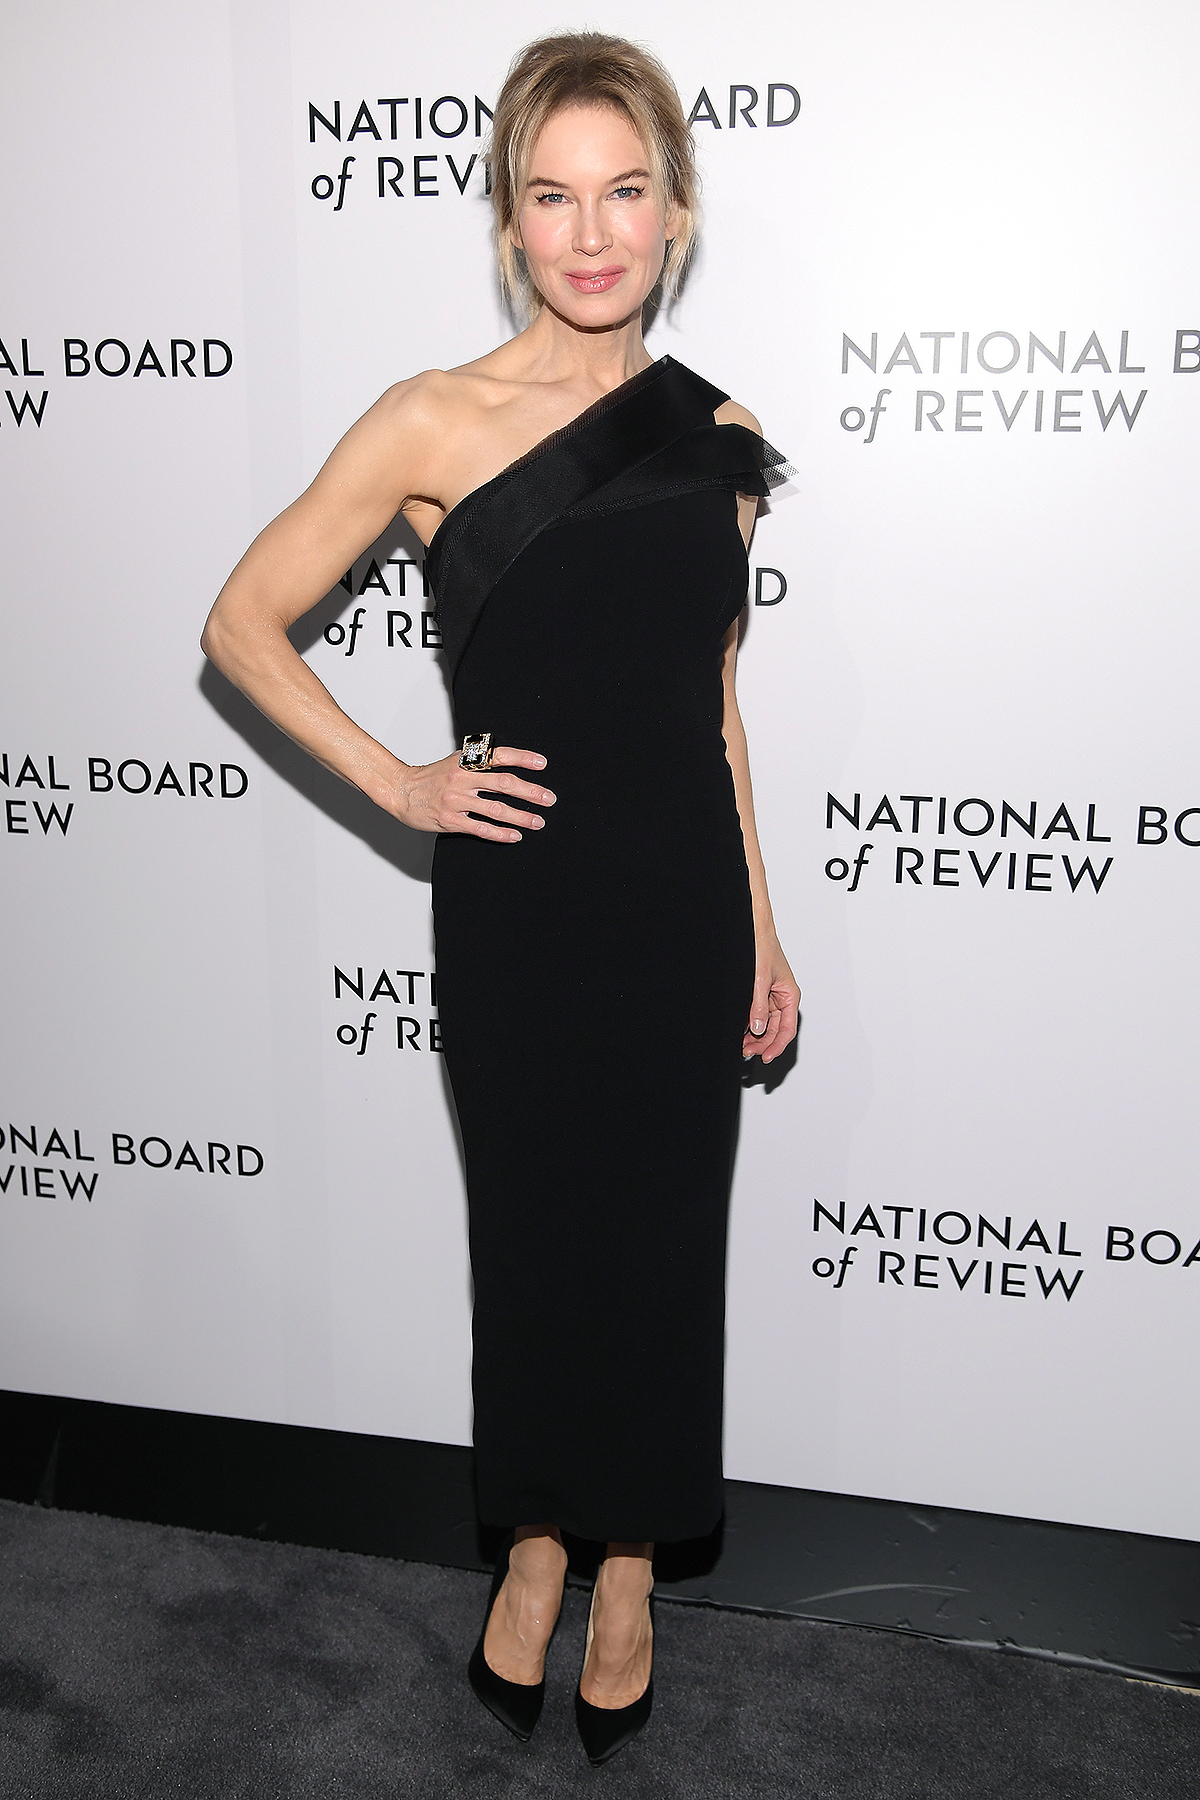 Renée Zellweger attends The National Board of Review Annual Awards Gala at Cipriani 42nd Street on January 08, 2020 in New York City.